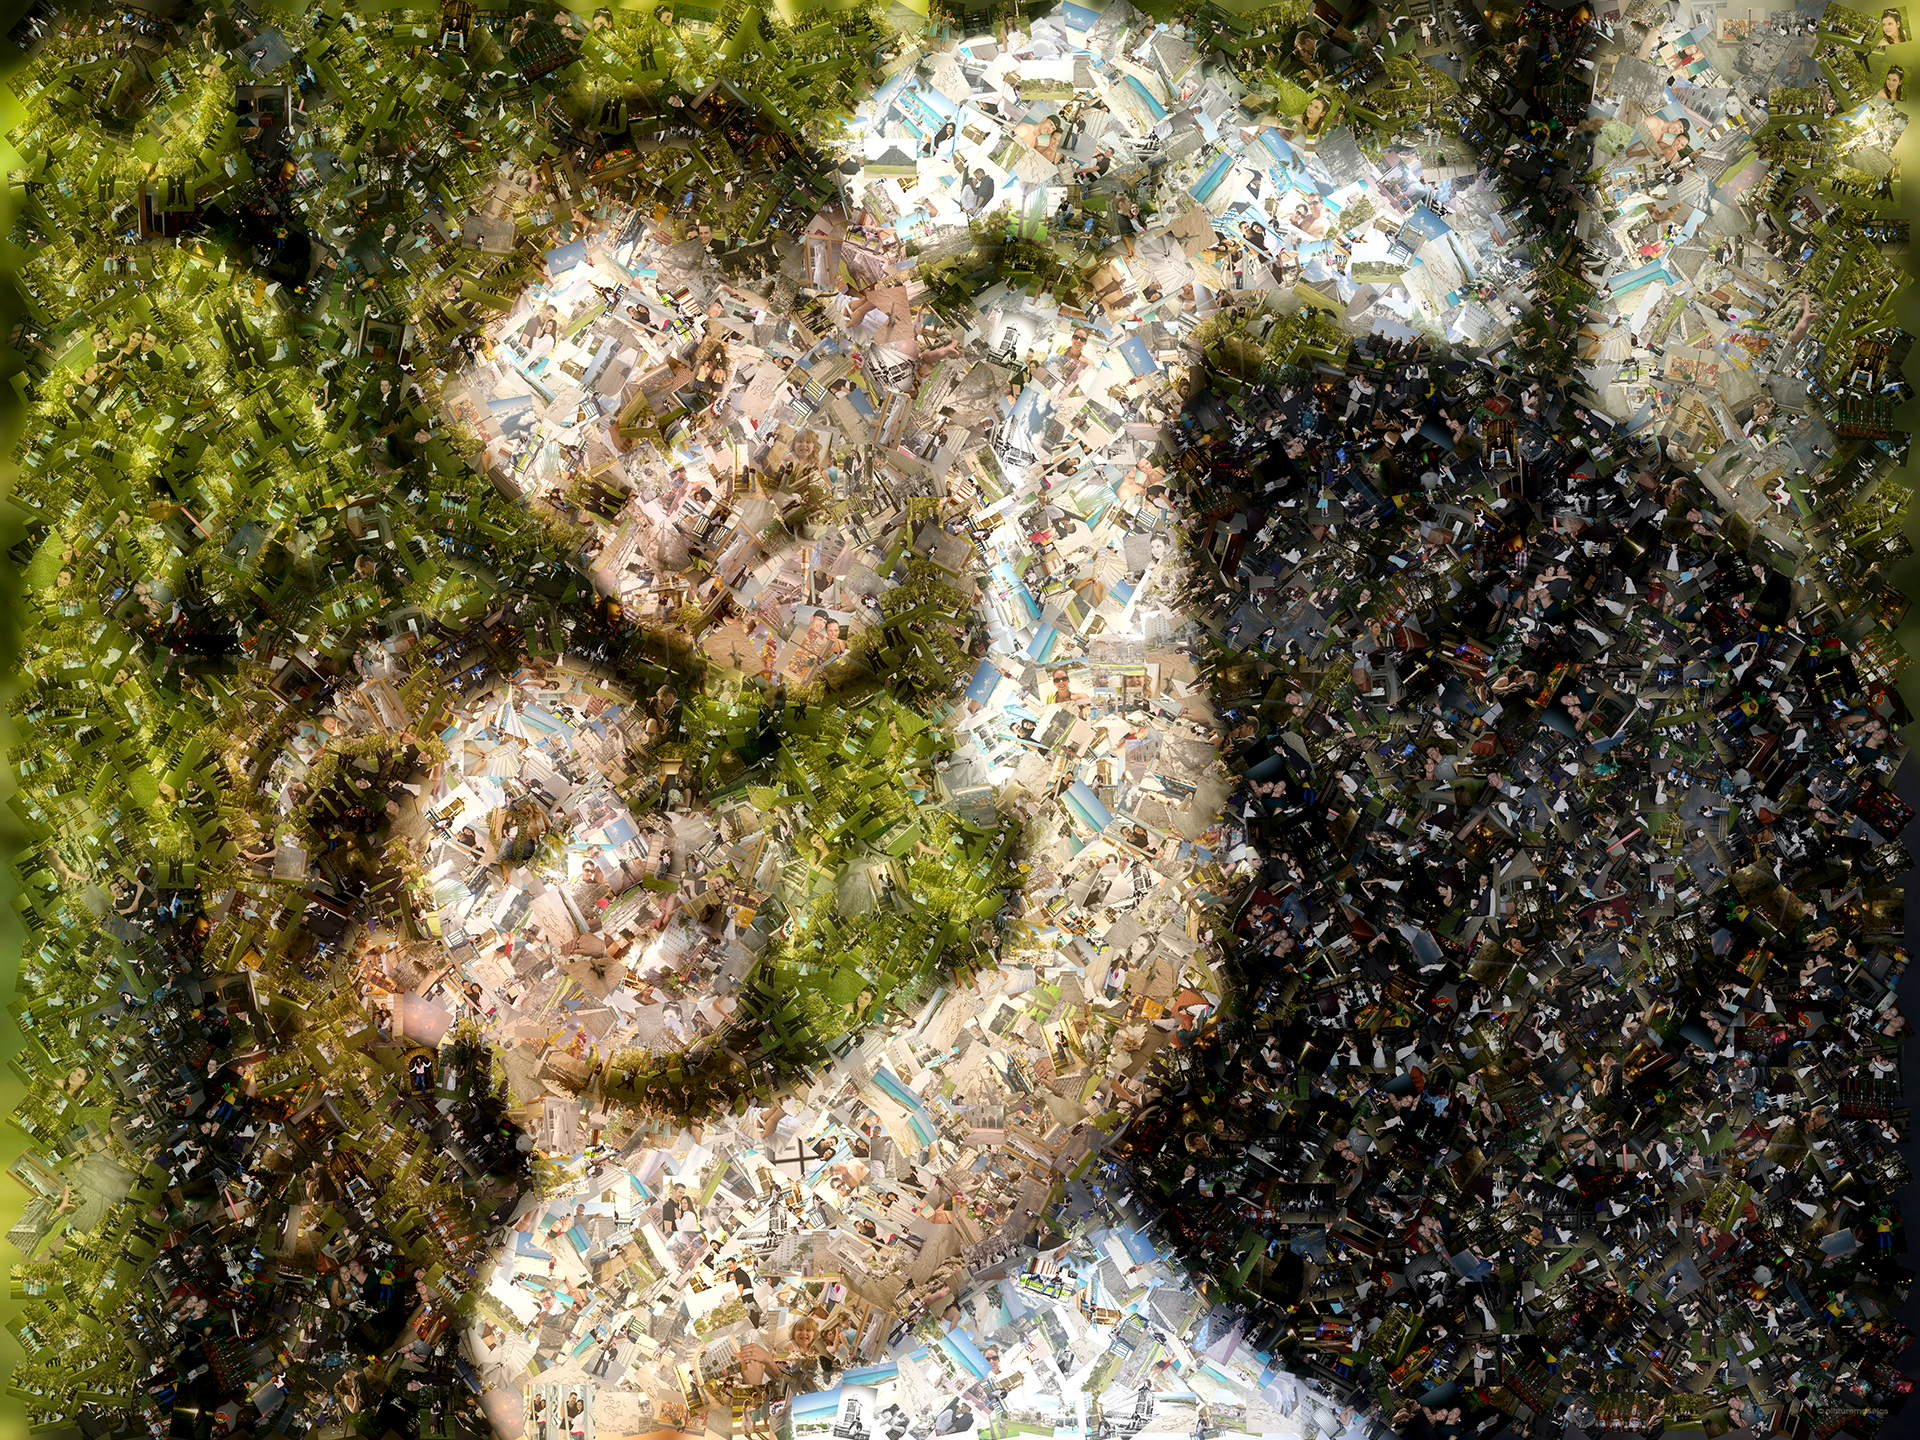 photo mosaic created using over 1,000 newly wed photos